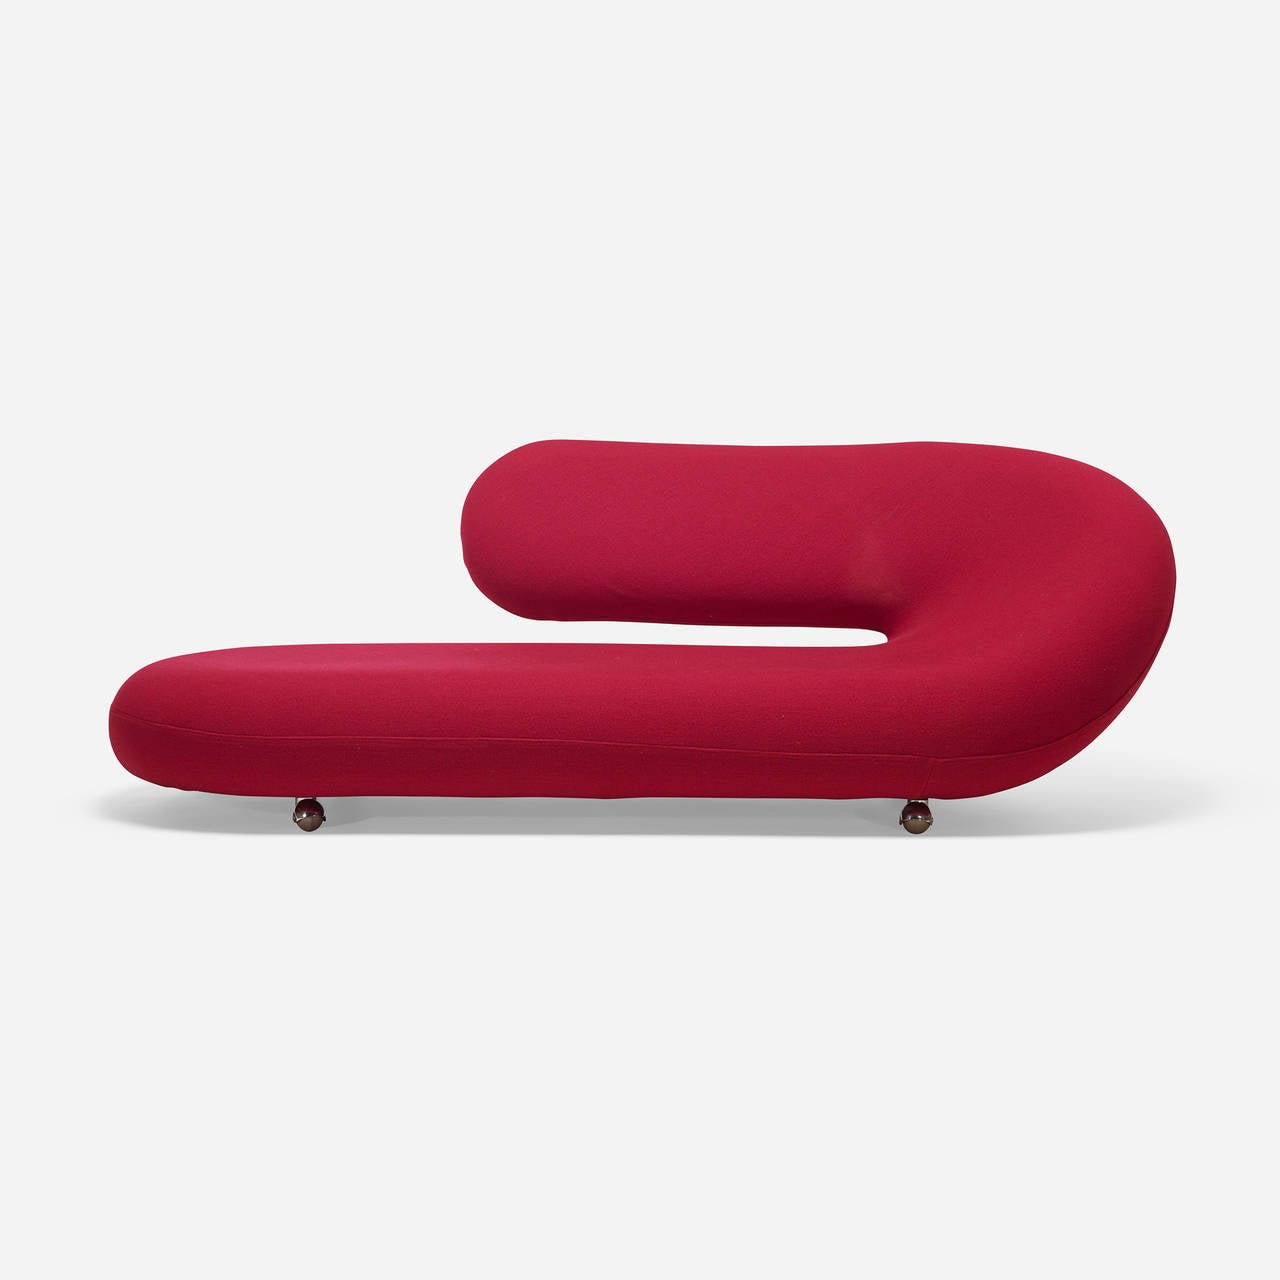 cleopatra chaise lounge by geoffrey harcourt for artifort